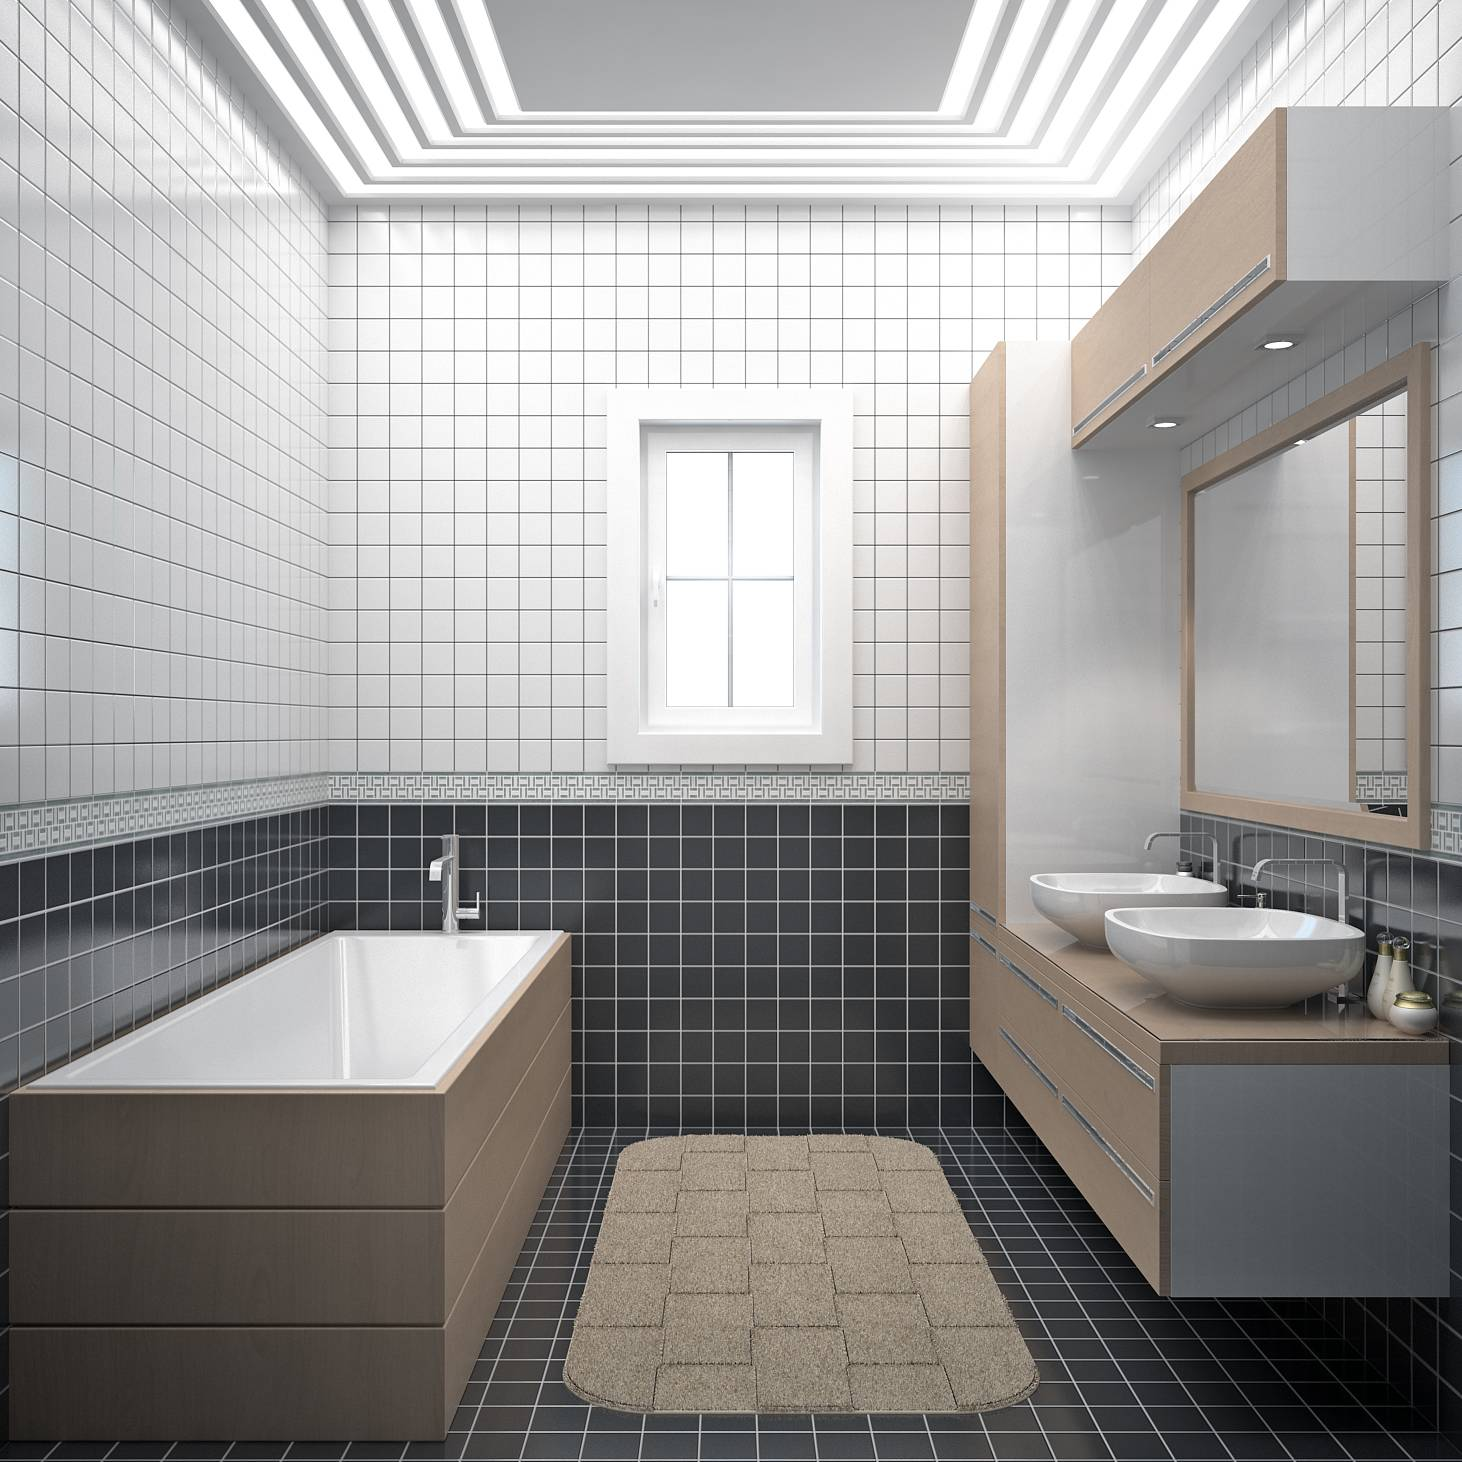 Maison en l de 130m2 lavande traditionnel azur logement for Idee amenagement salle de bain 6m2